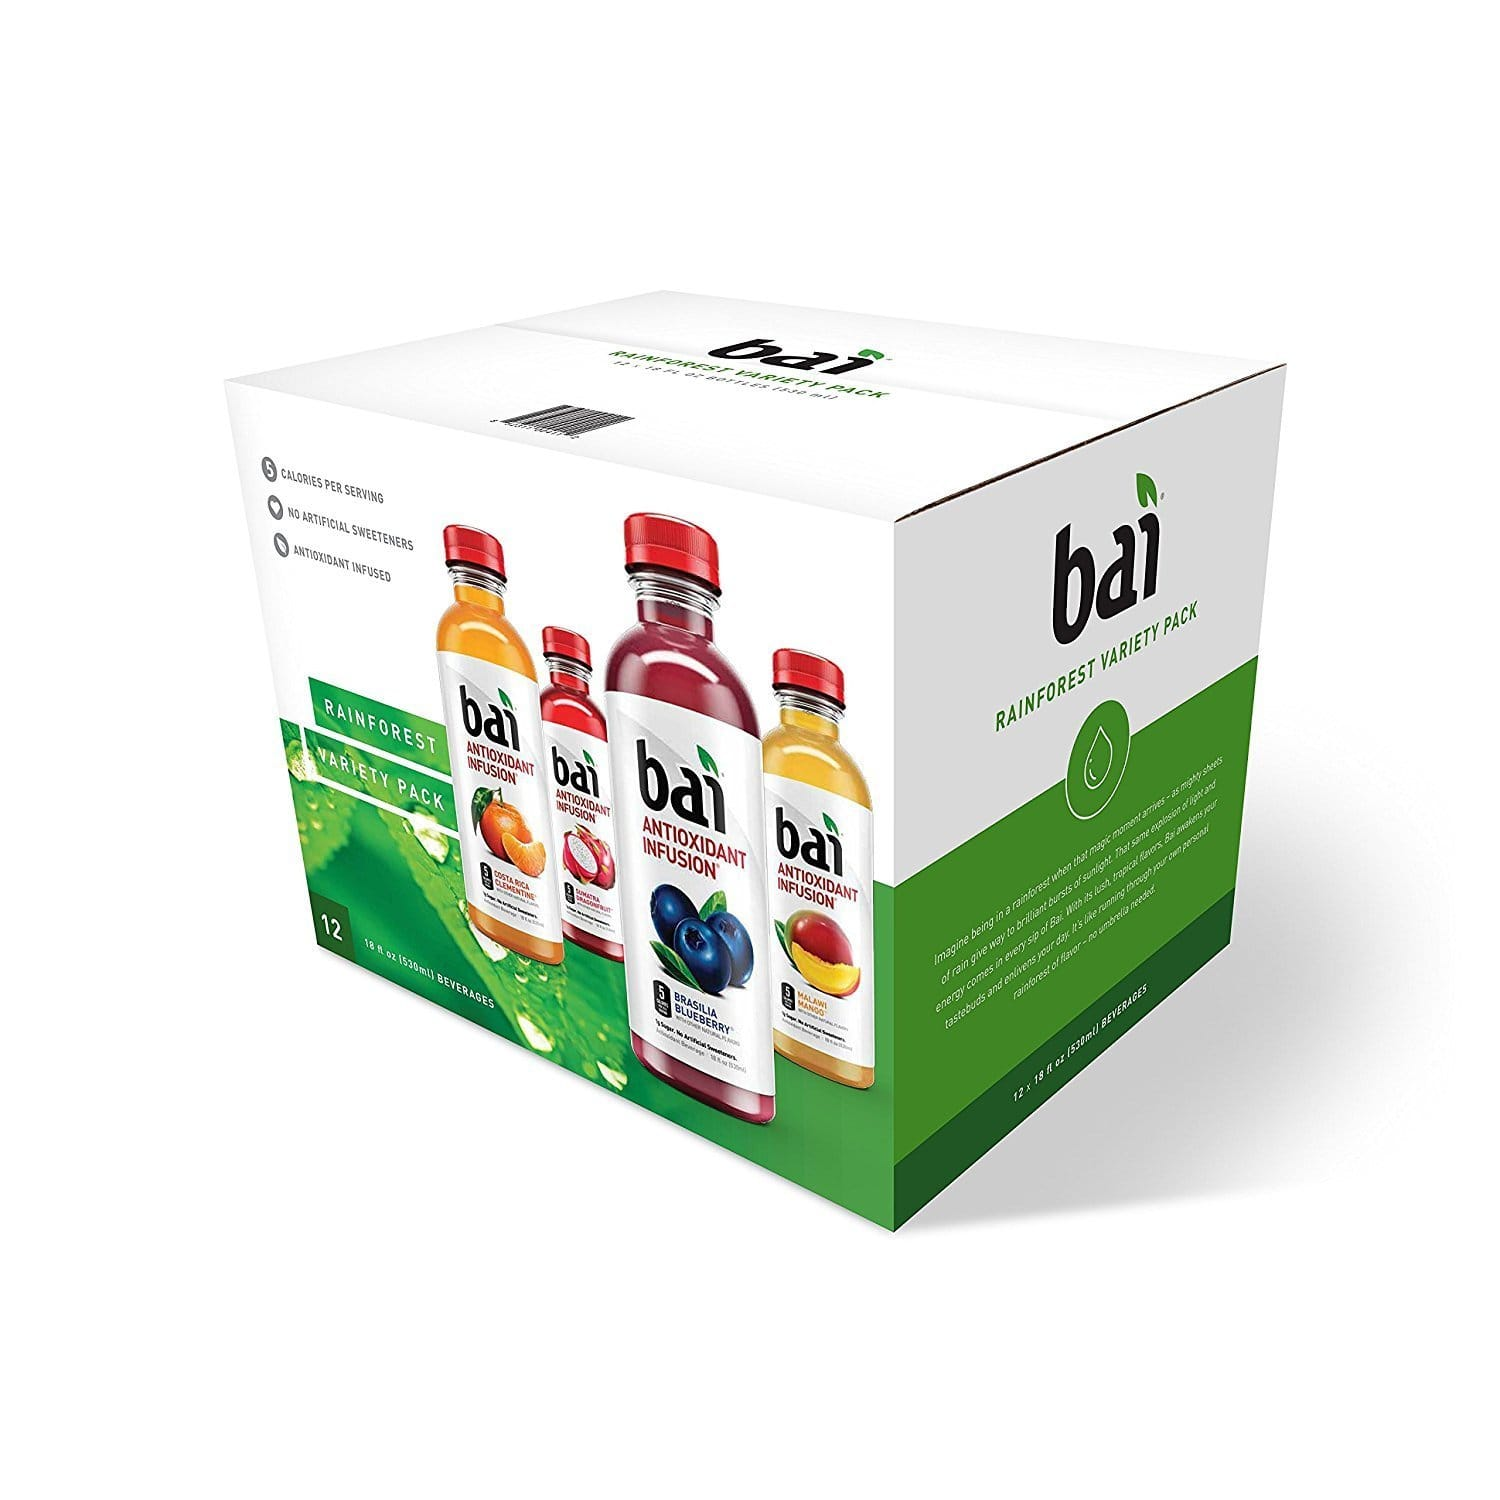 Bai Flavored Water, Rainforest Variety Pack, 18 Fluid Ounce Bottles, 12 count $11.20 after coupon at Amazon